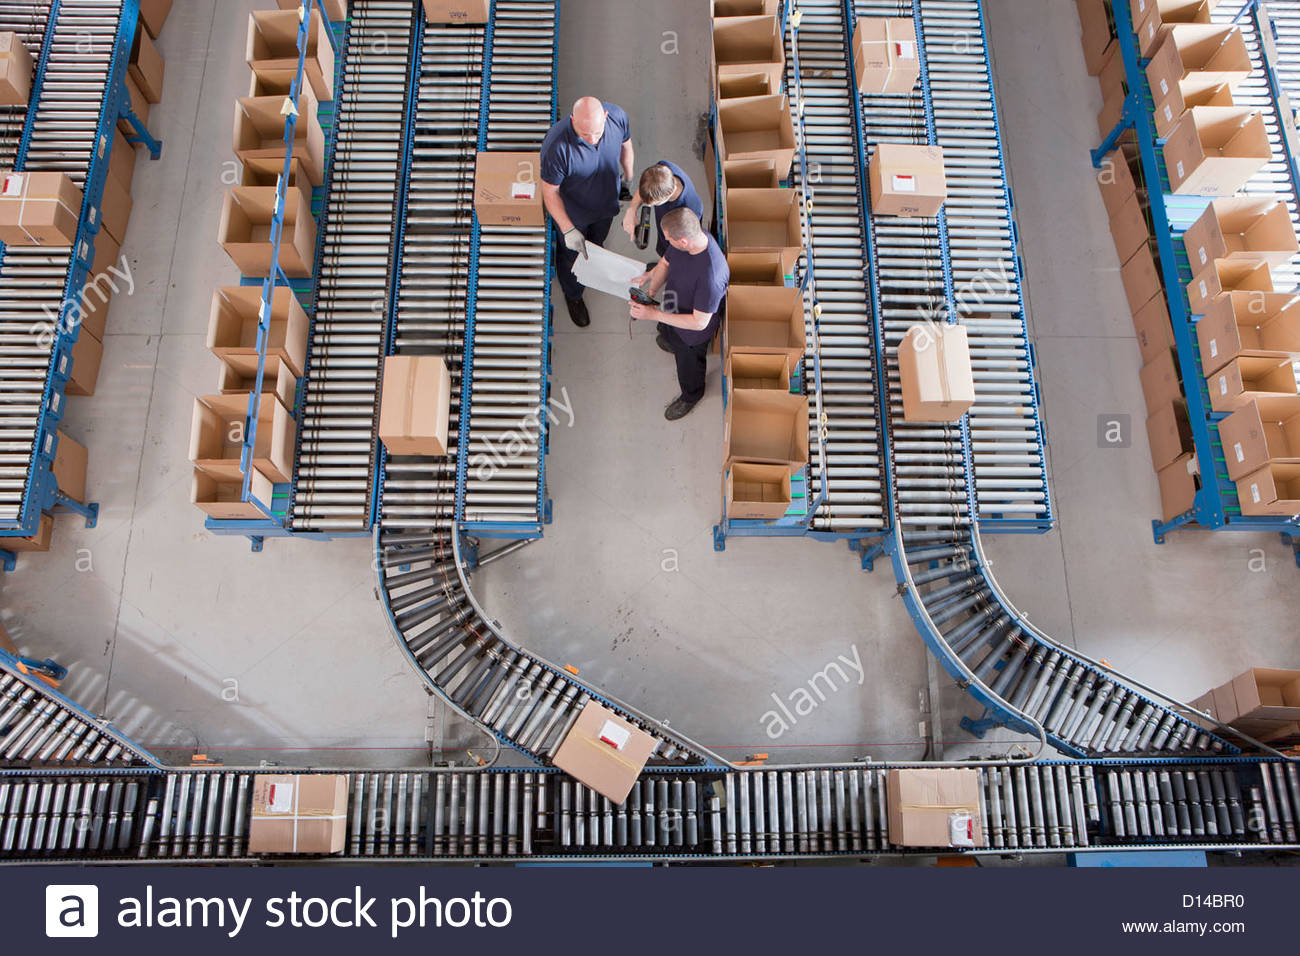 Workers meeting among boxes on conveyor belts in distribution warehouse - Stock Image